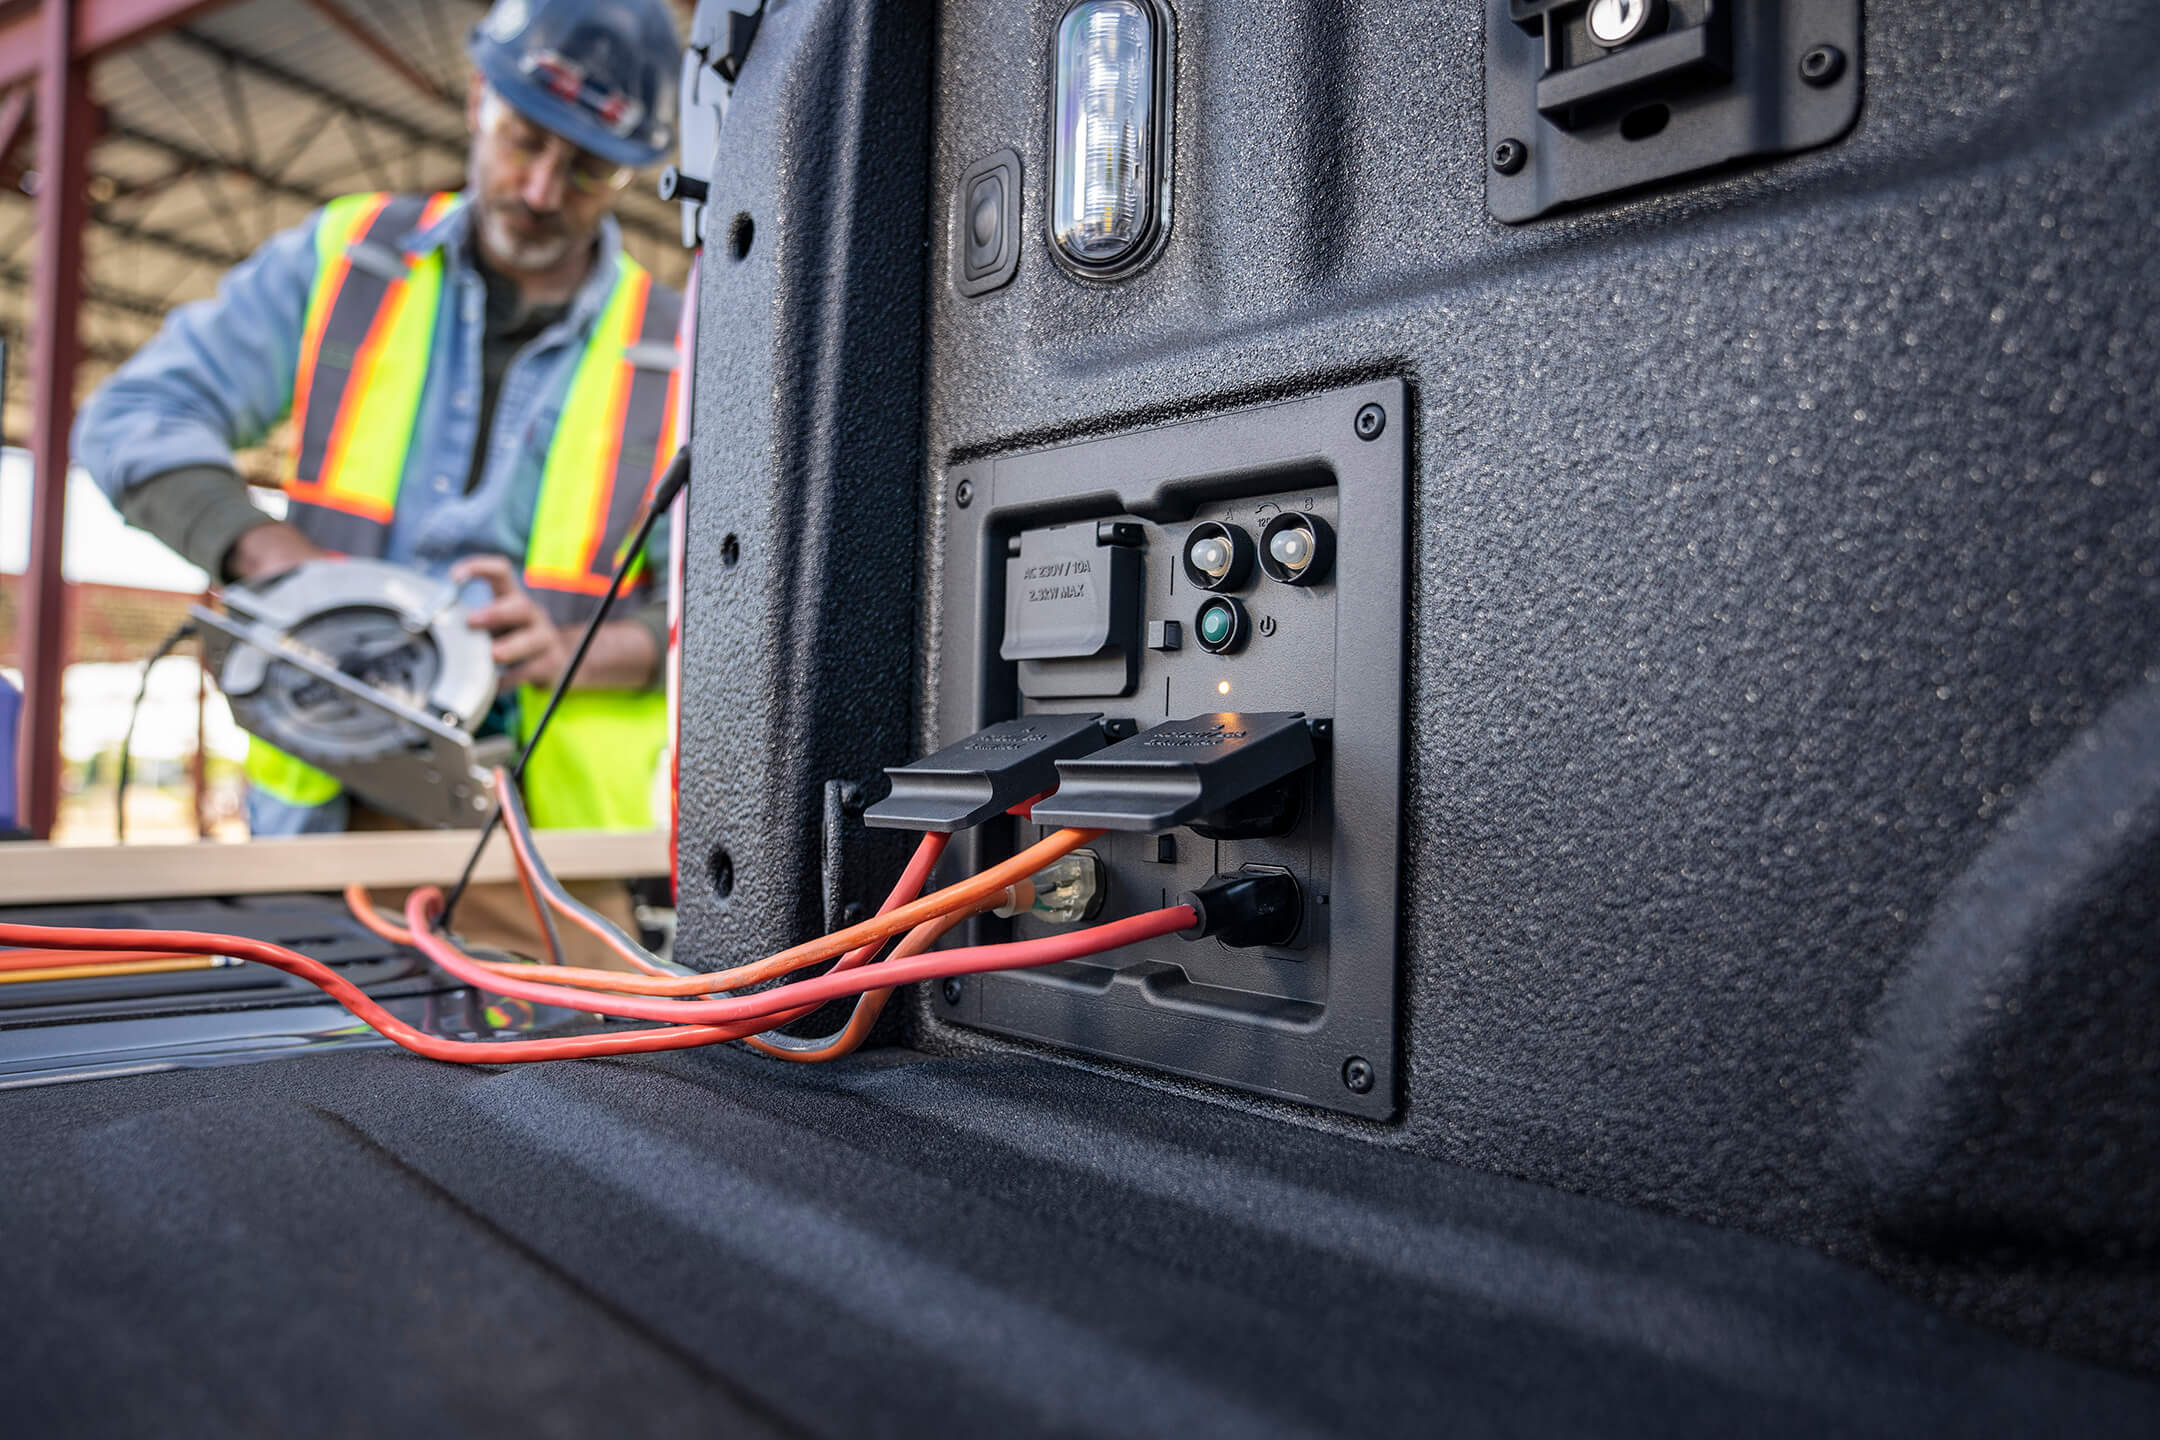 ford f150 built in power outlets being used for the job